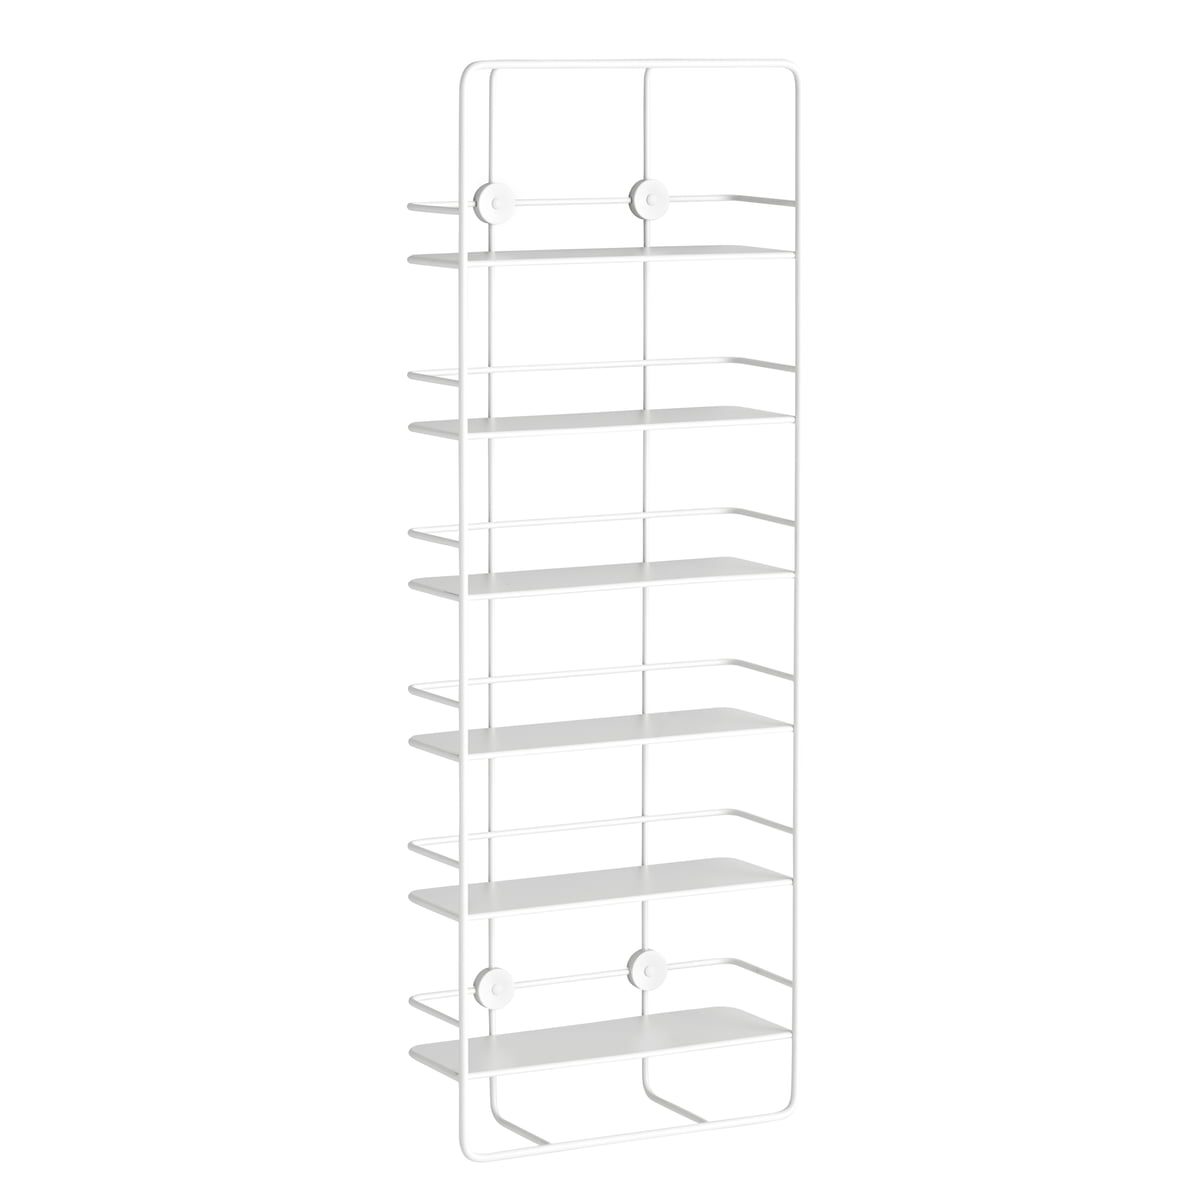 Coup Vertical Shelf by Woud in white